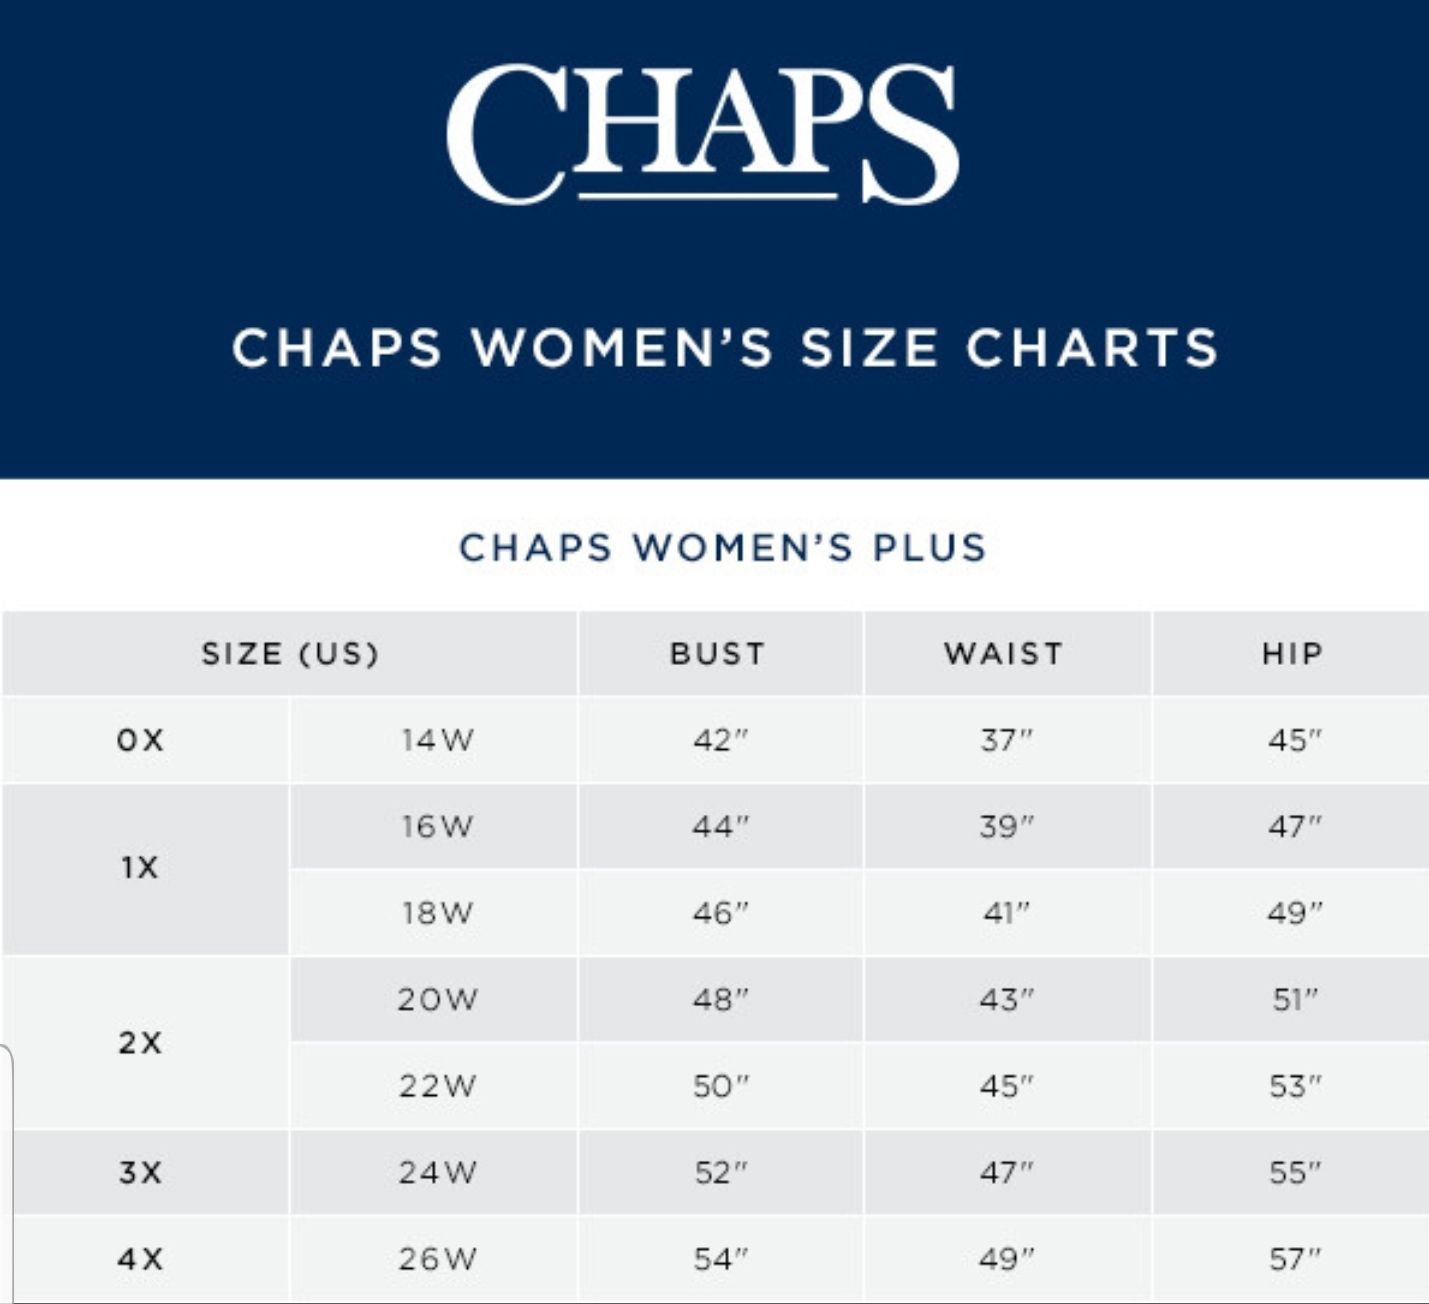 Pin On Name Brand Clothing Size Charts